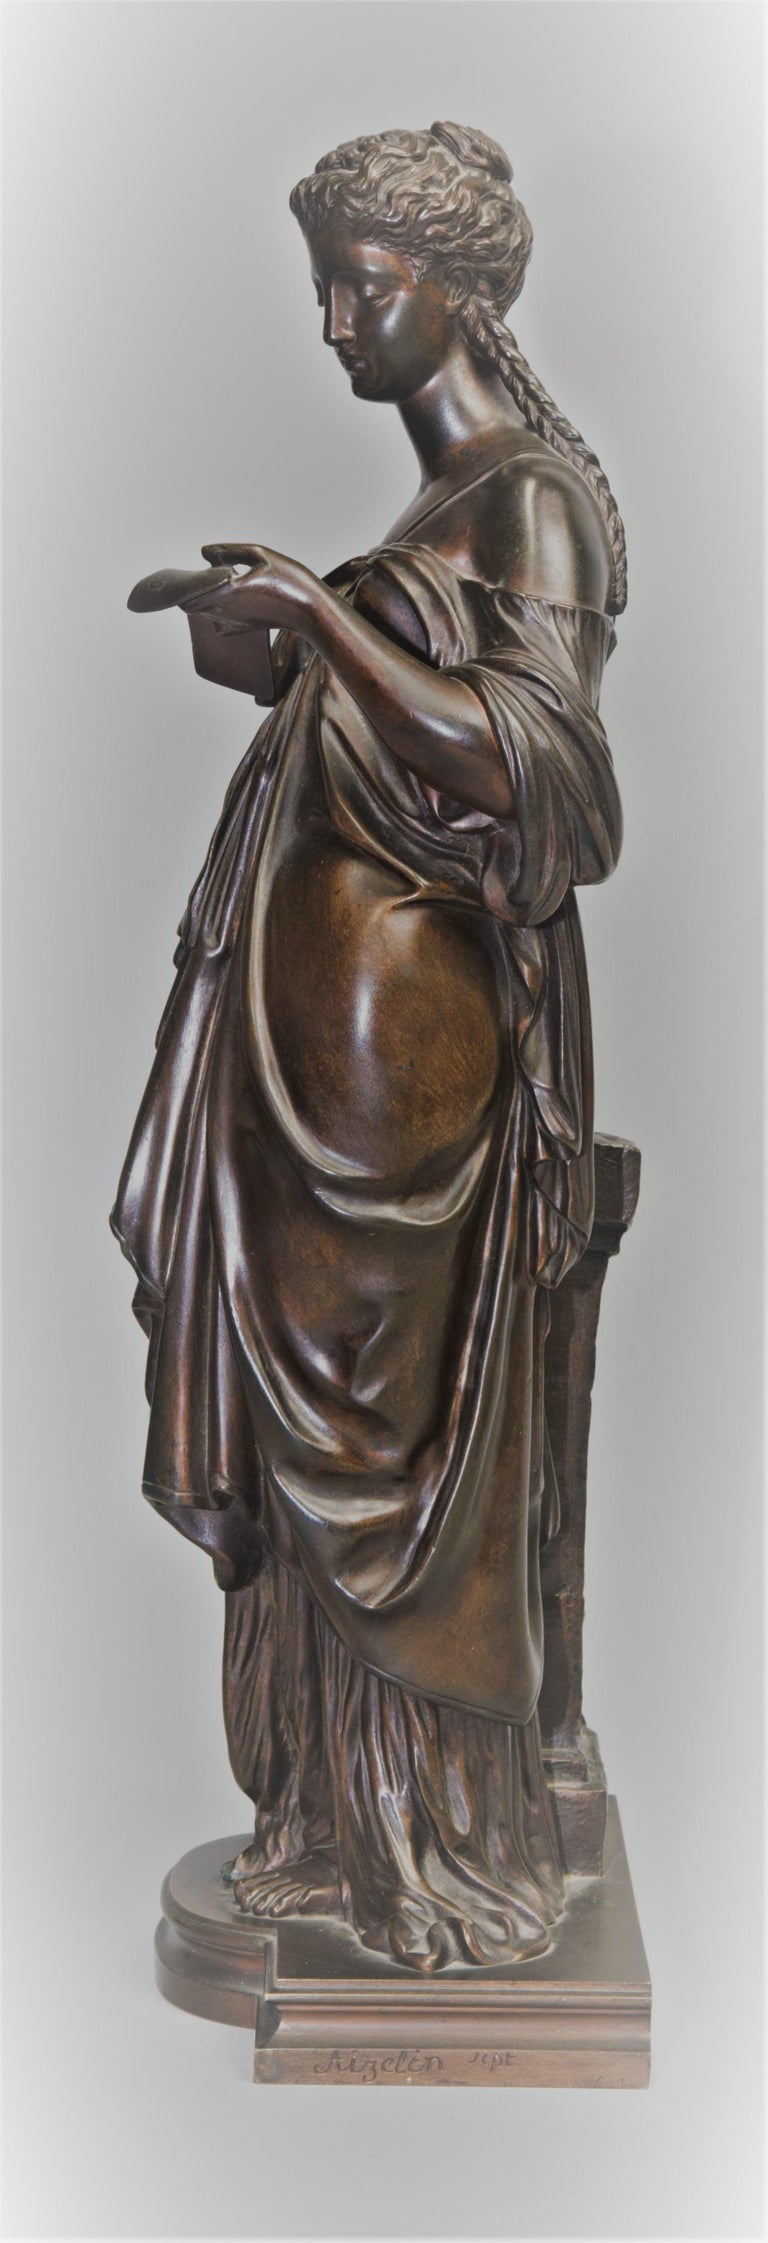 Antique Bronze Female Sculpture by Eugene Antoine Aizelin, 19th Century, France For Sale 2